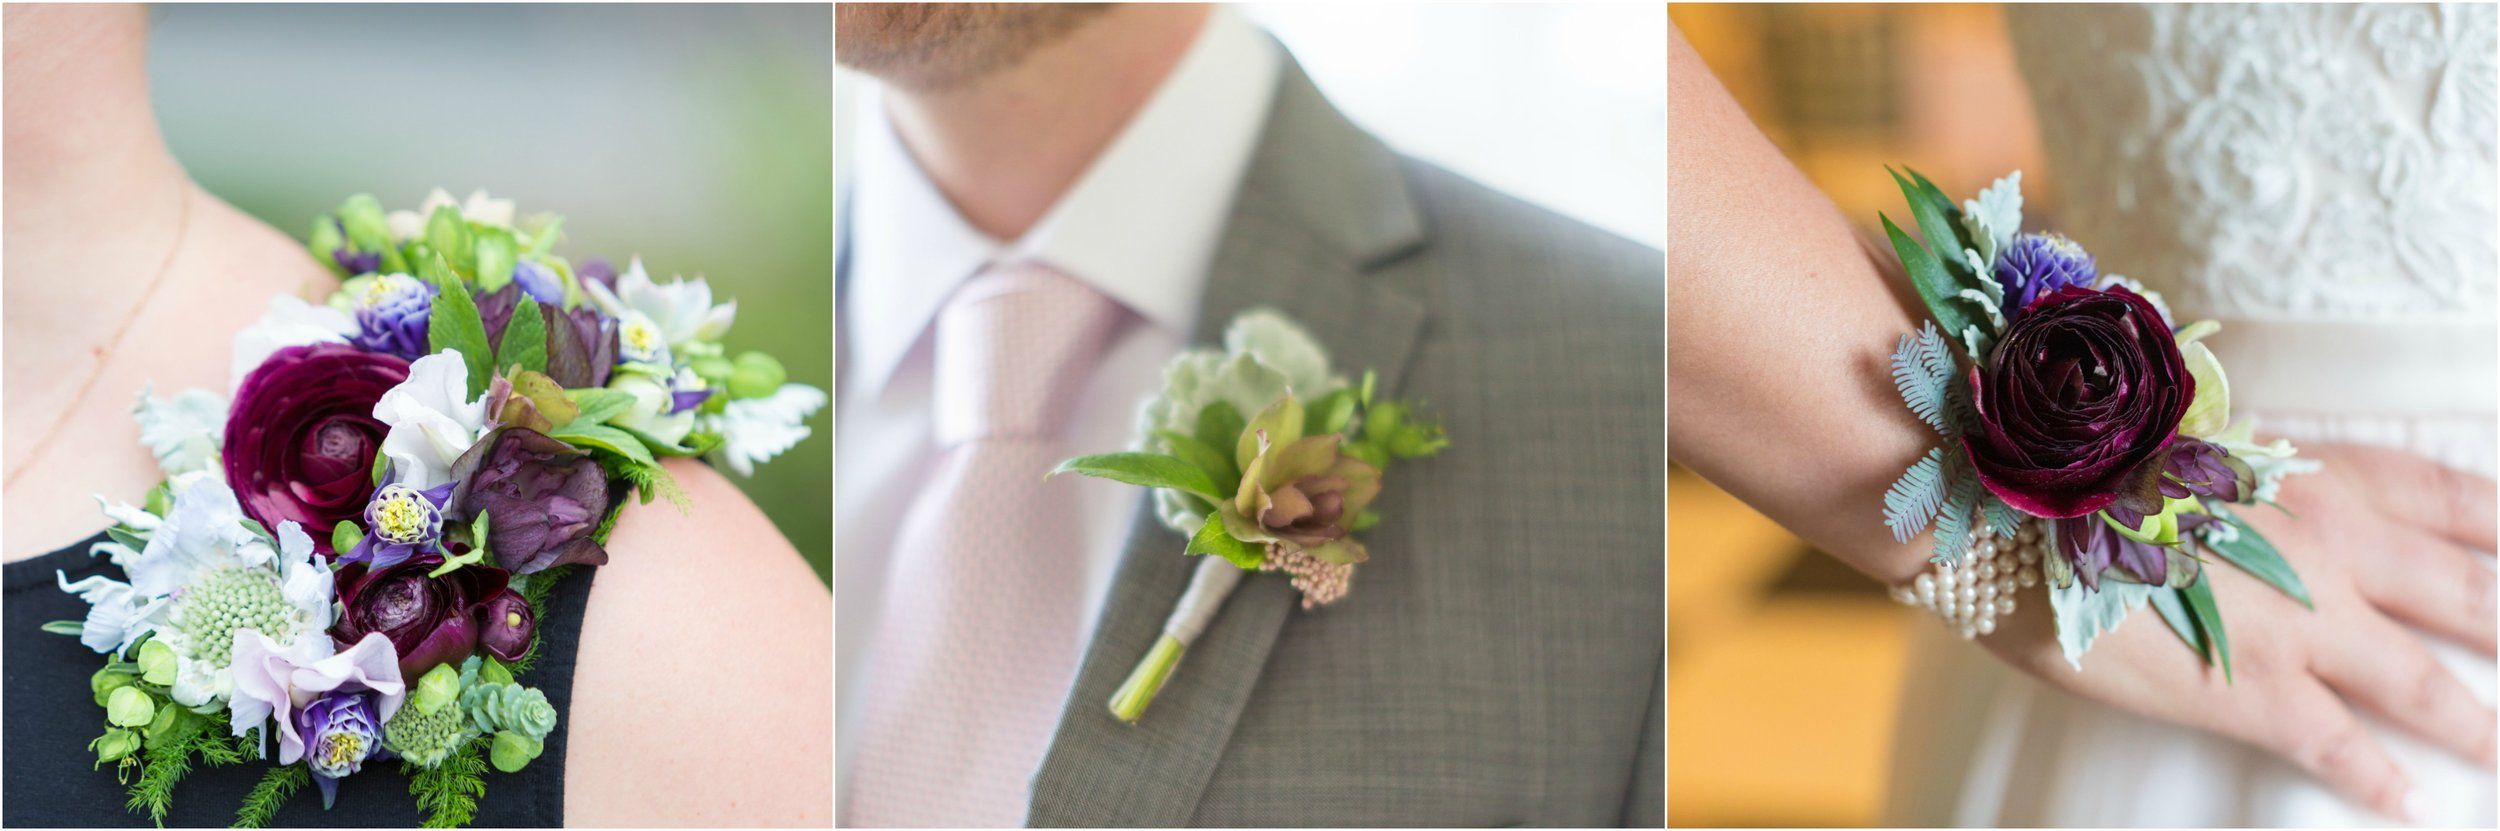 Floral Accessory inspiration by A Garden Party florist